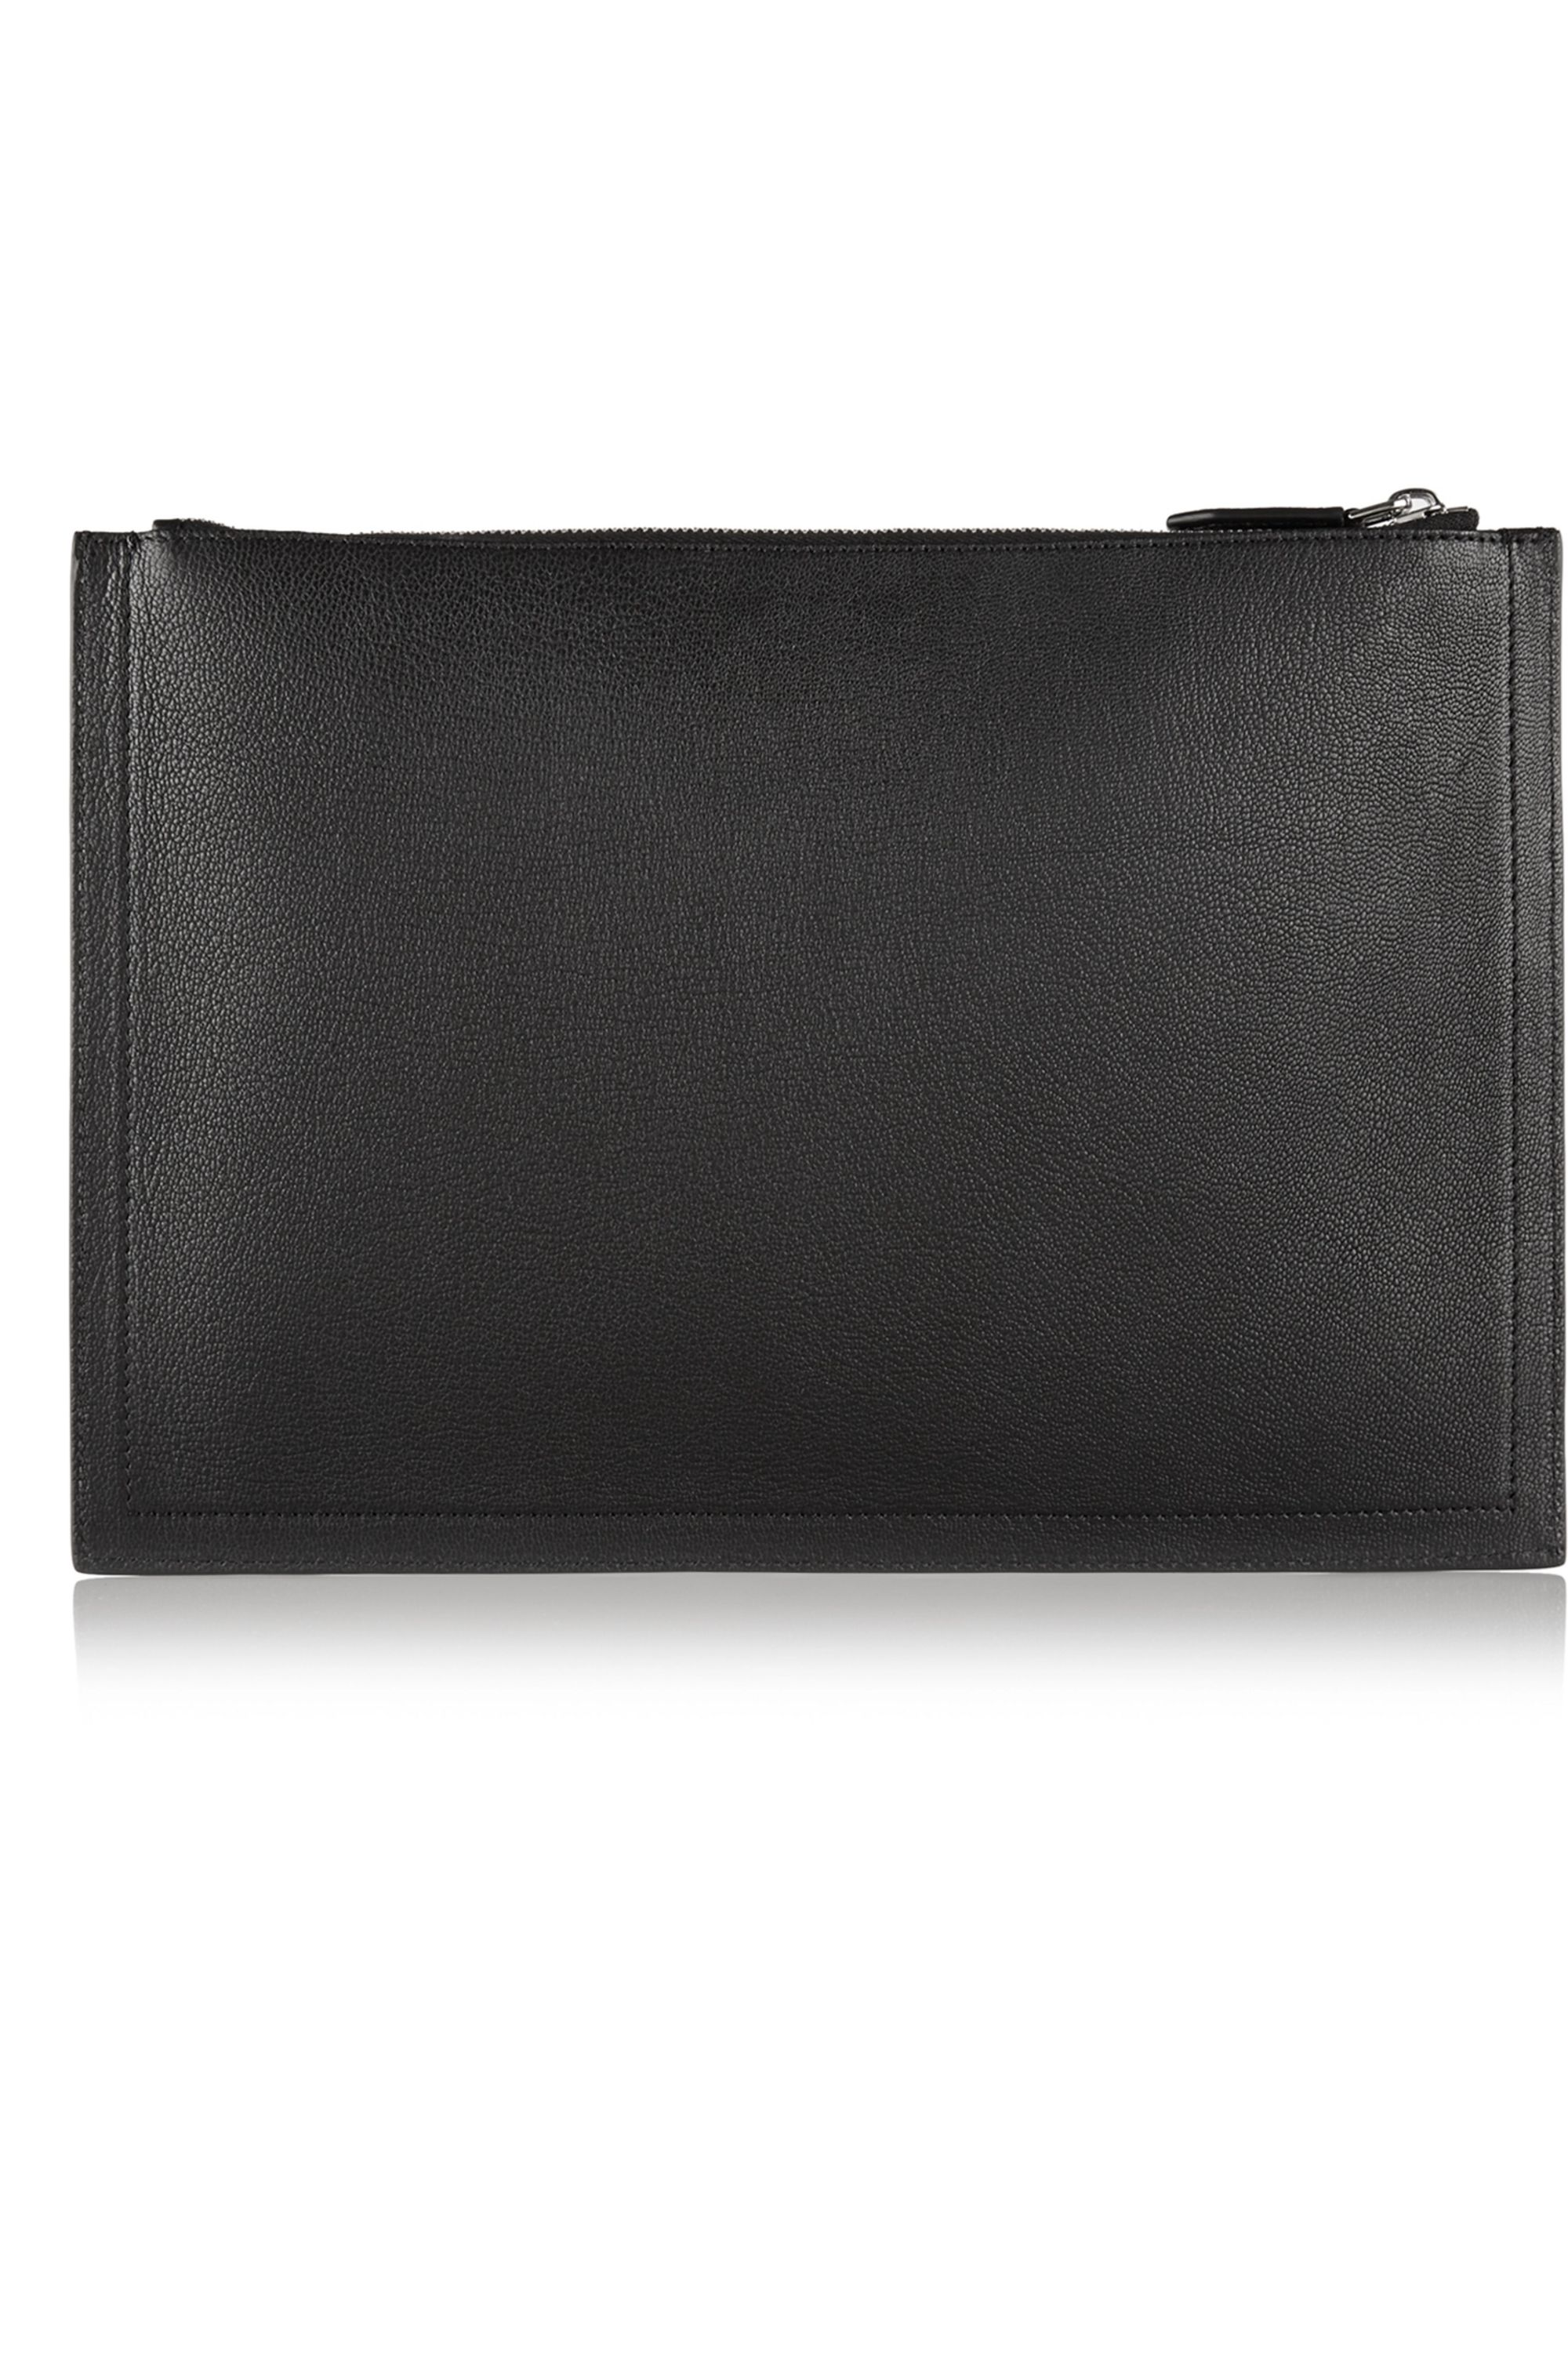 Givenchy Antigona textured-leather pouch